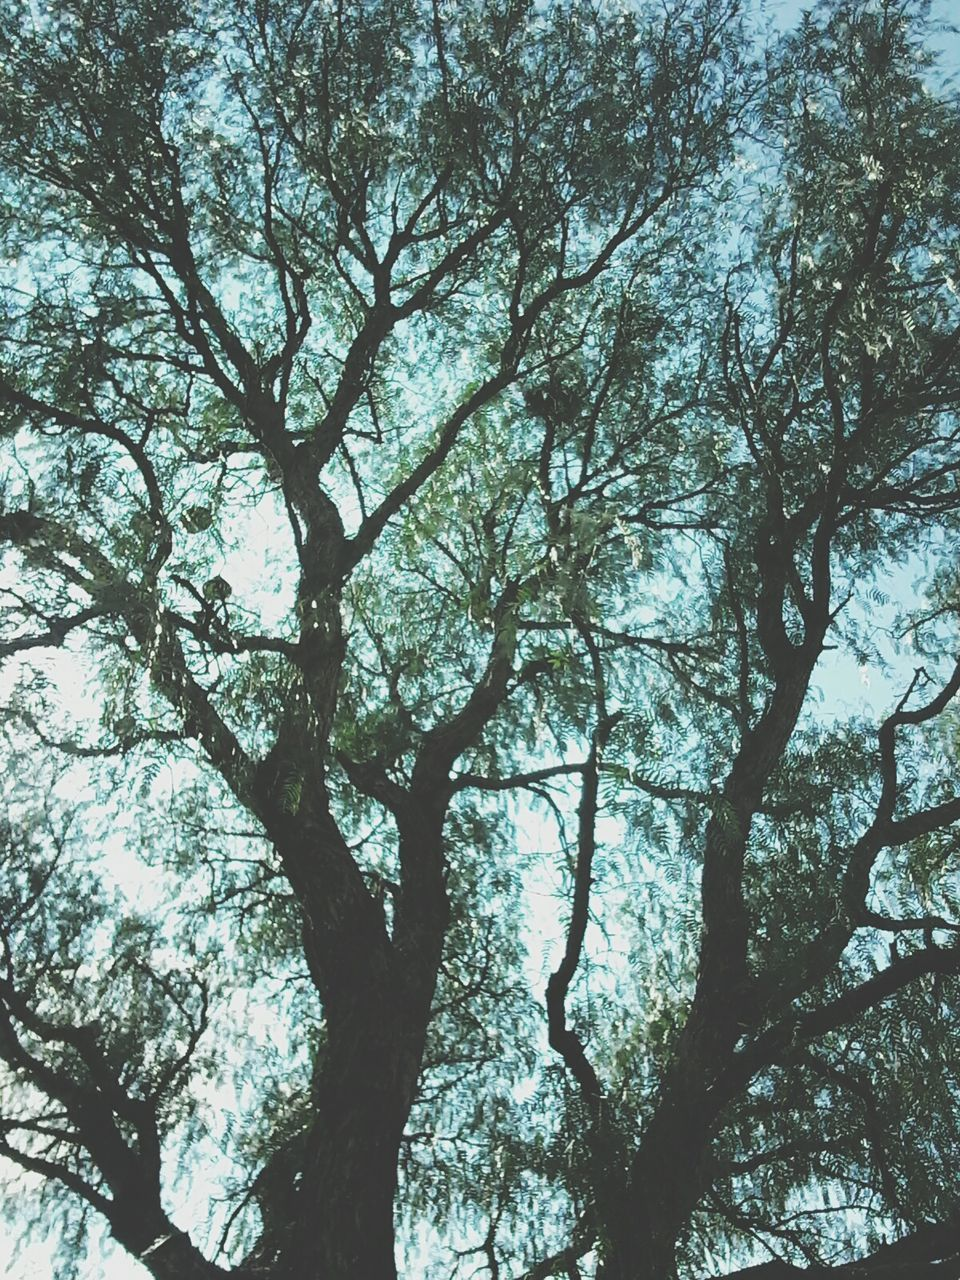 tree, low angle view, nature, branch, day, outdoors, beauty in nature, forest, growth, no people, tranquility, sky